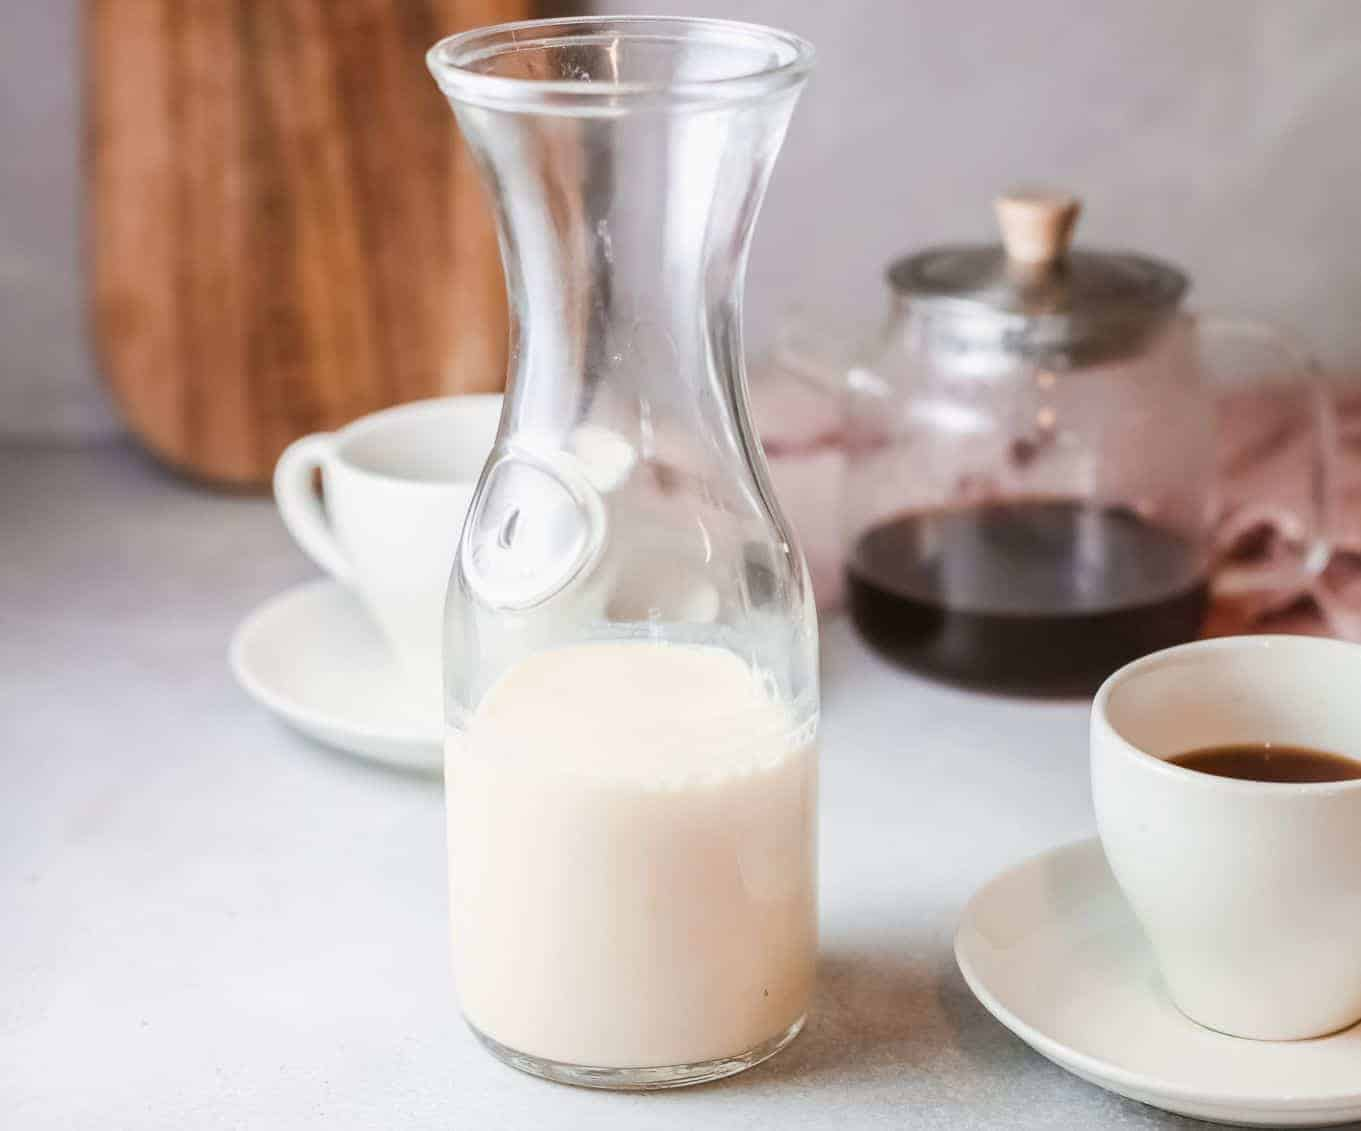 Jug of homemade cashew creamer on table with cup of coffee